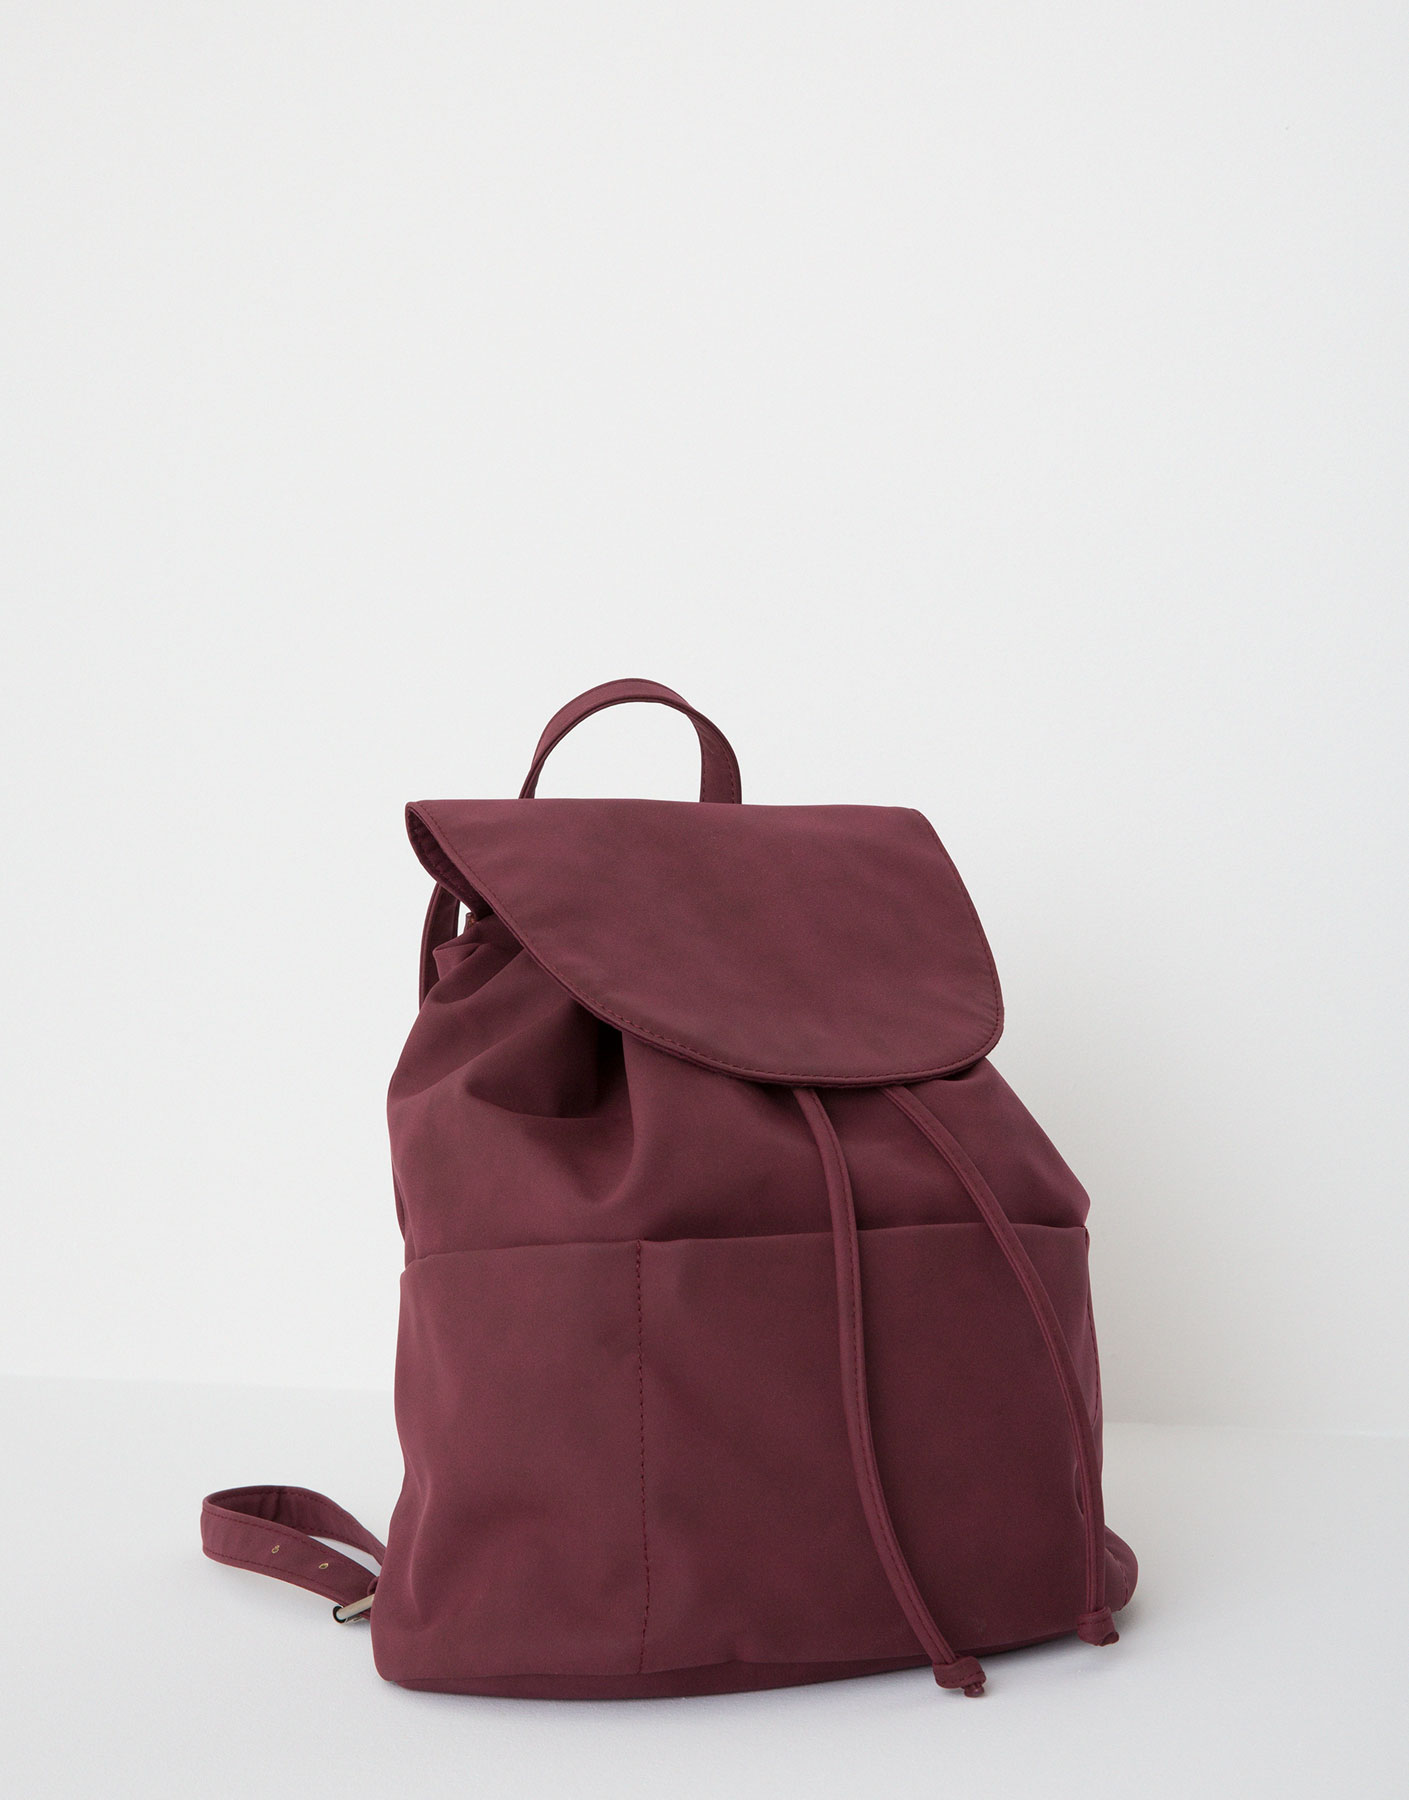 Backpack with a front flap